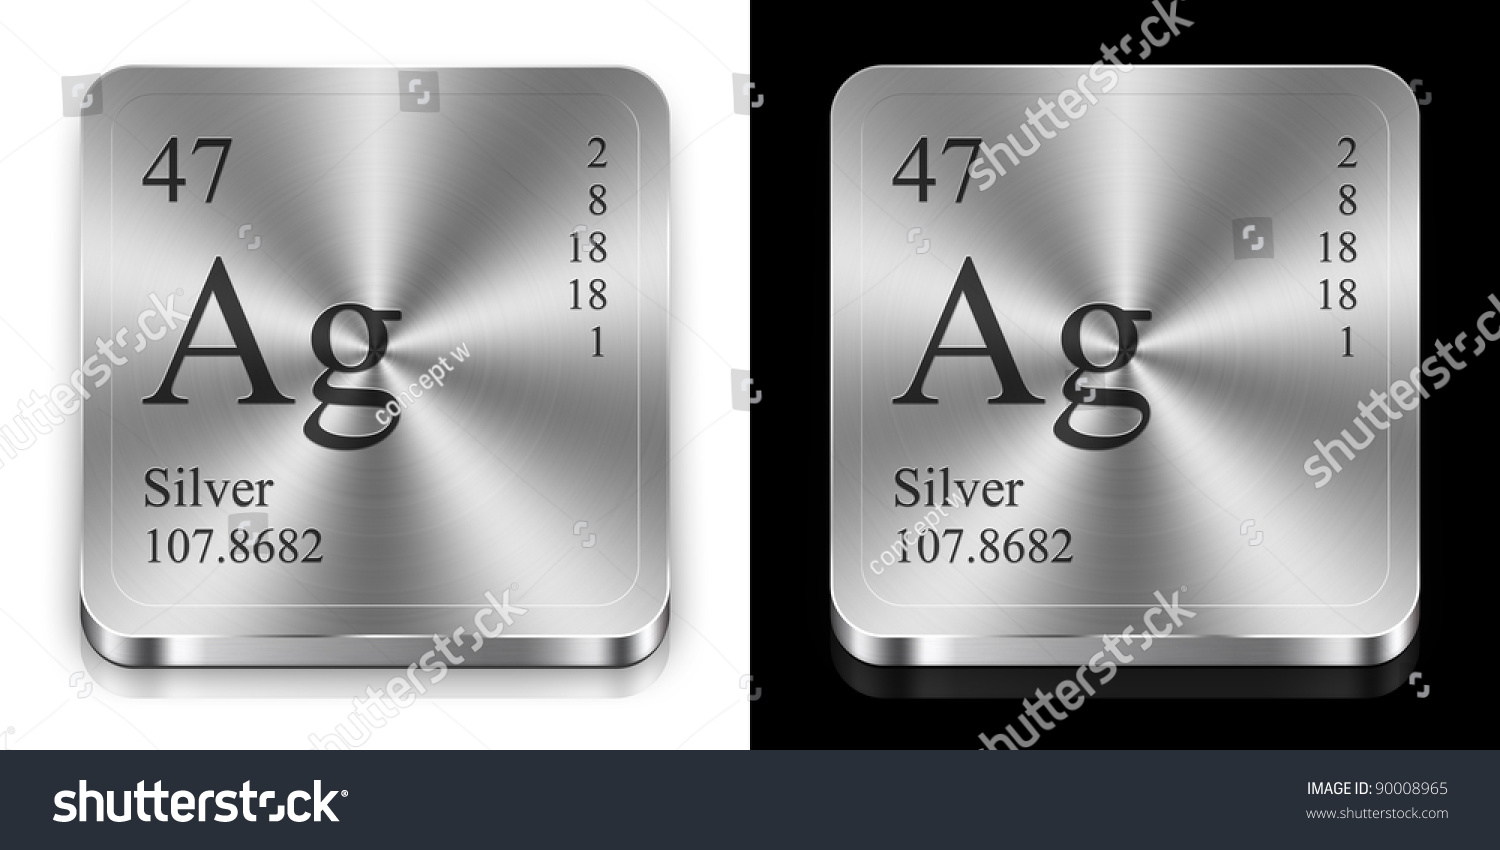 Silver periodic table of elements gallery periodic table images silver element periodic table two steel stock illustration silver element of the periodic table two steel gamestrikefo Choice Image